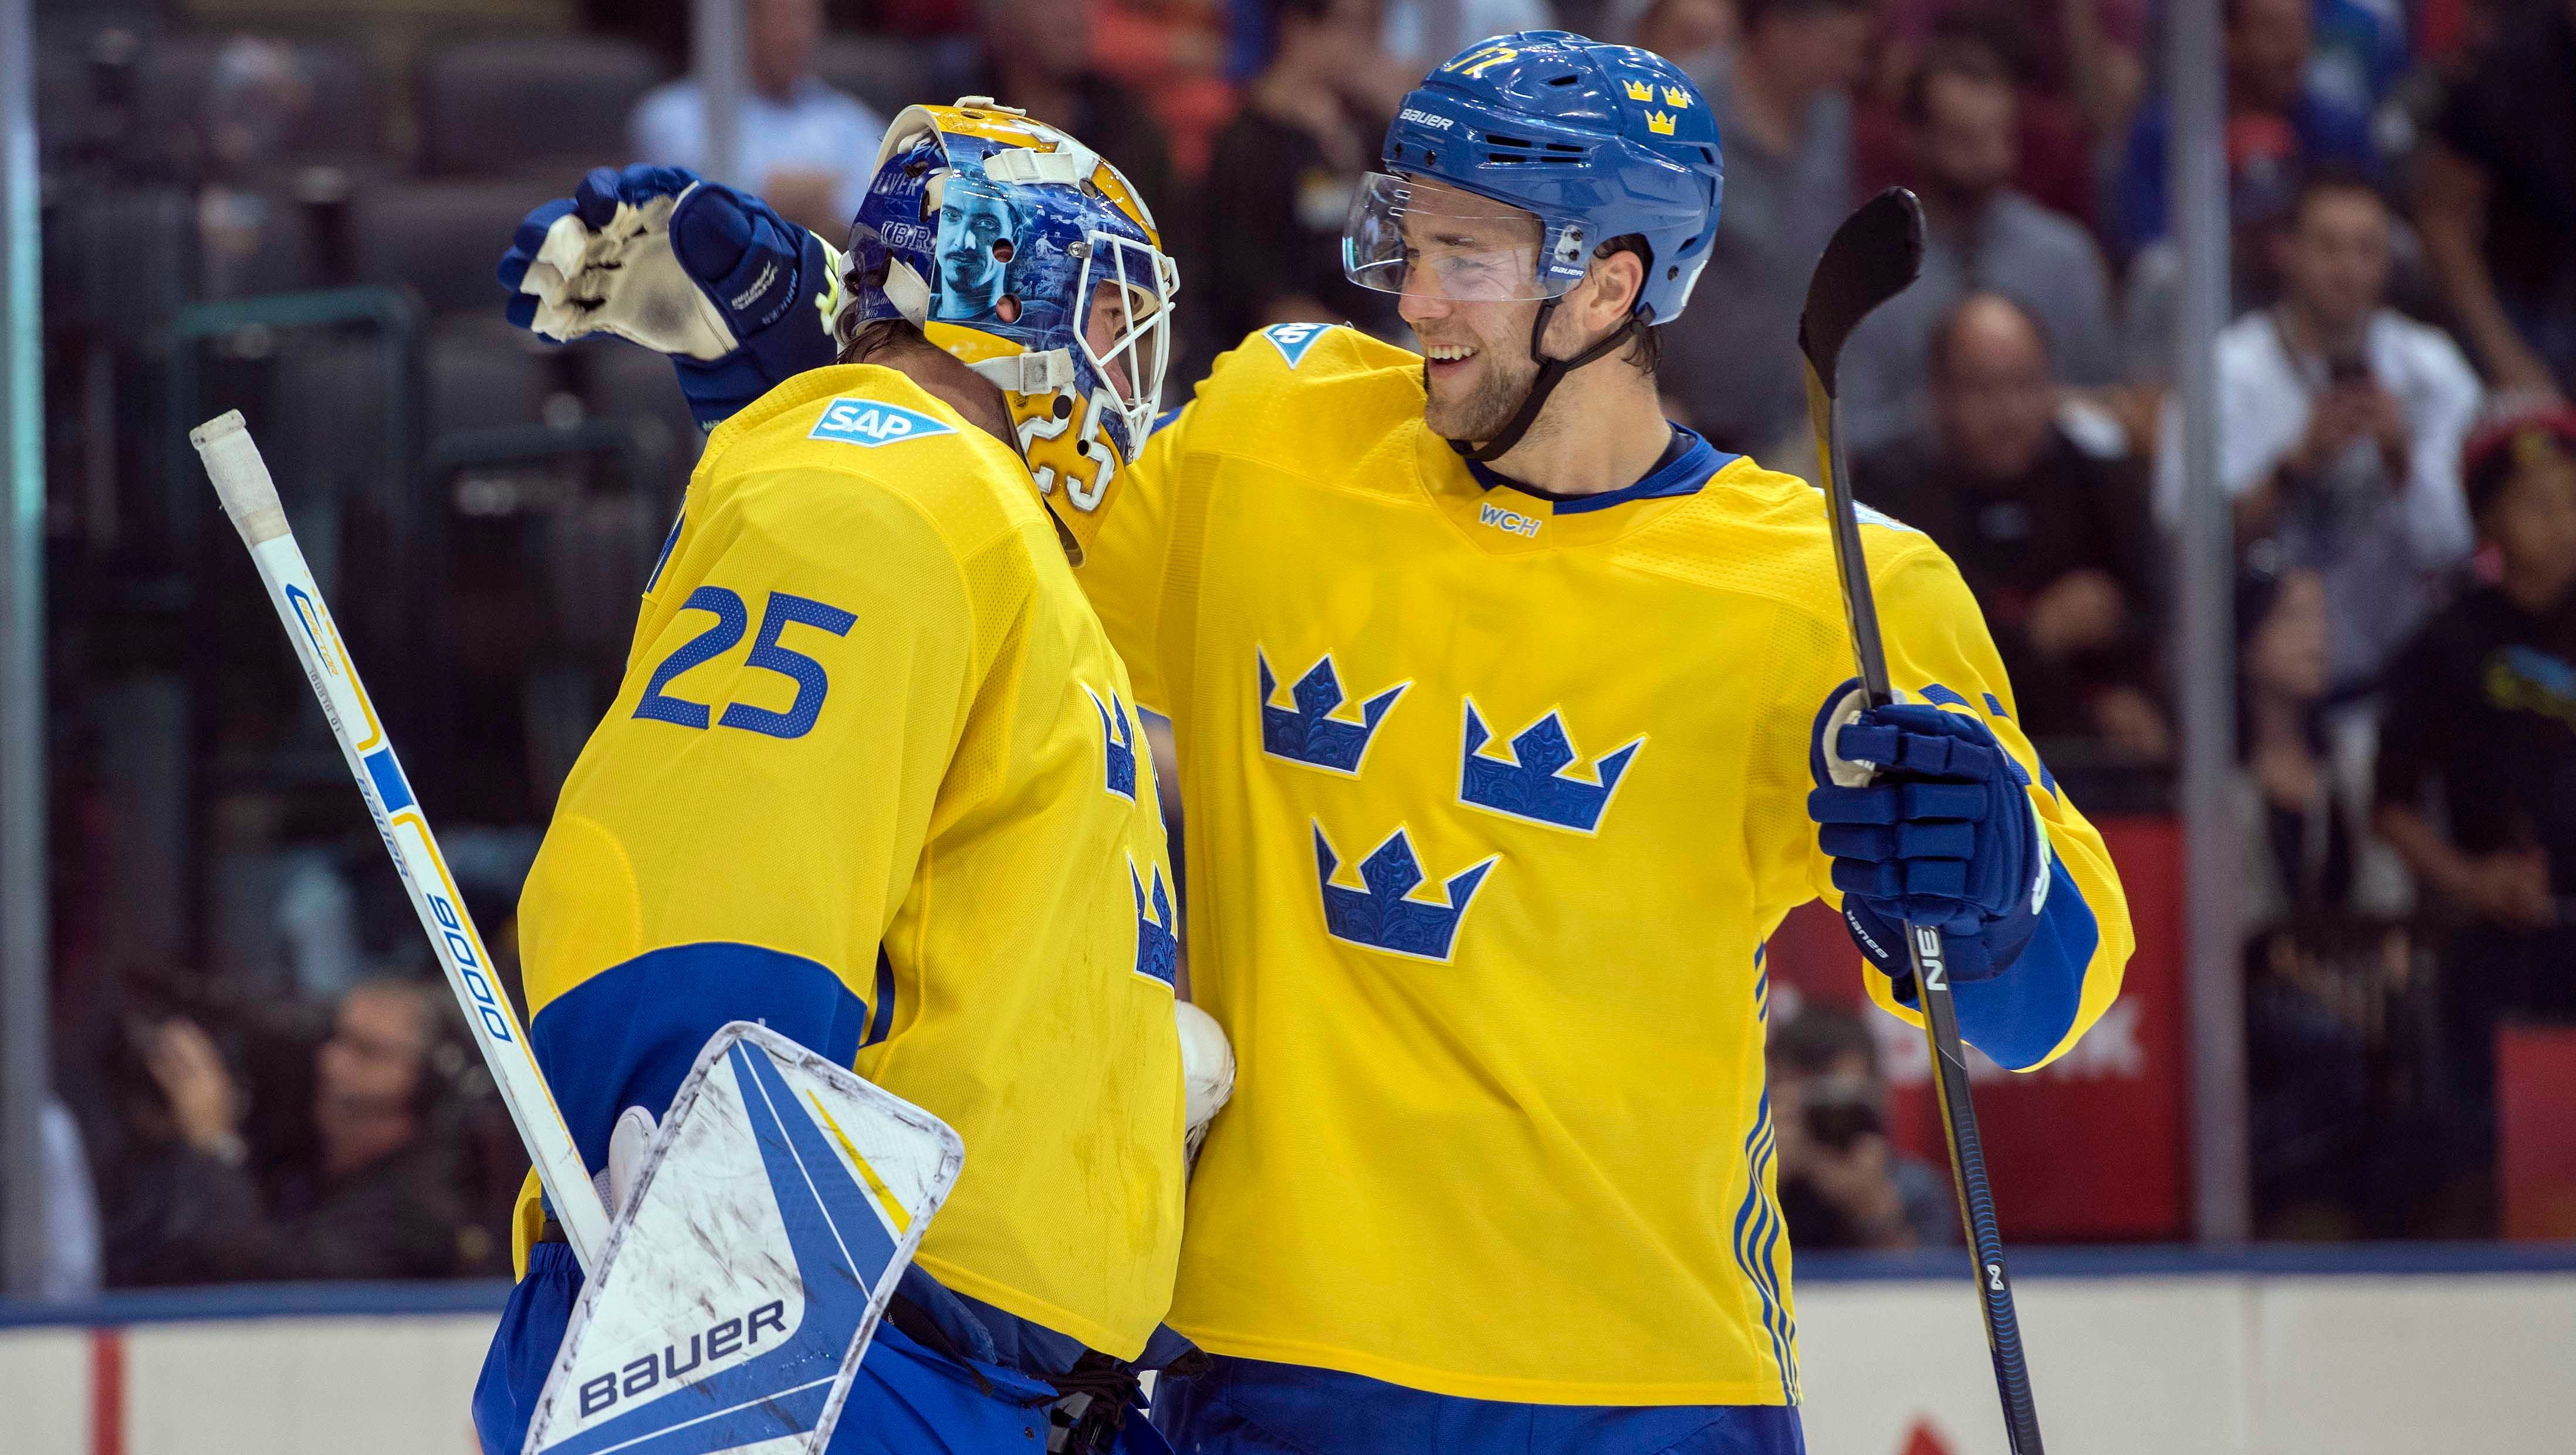 Fill In Jacob Markstrom Guides Sweden Past Russia At World Cup Of Hockey